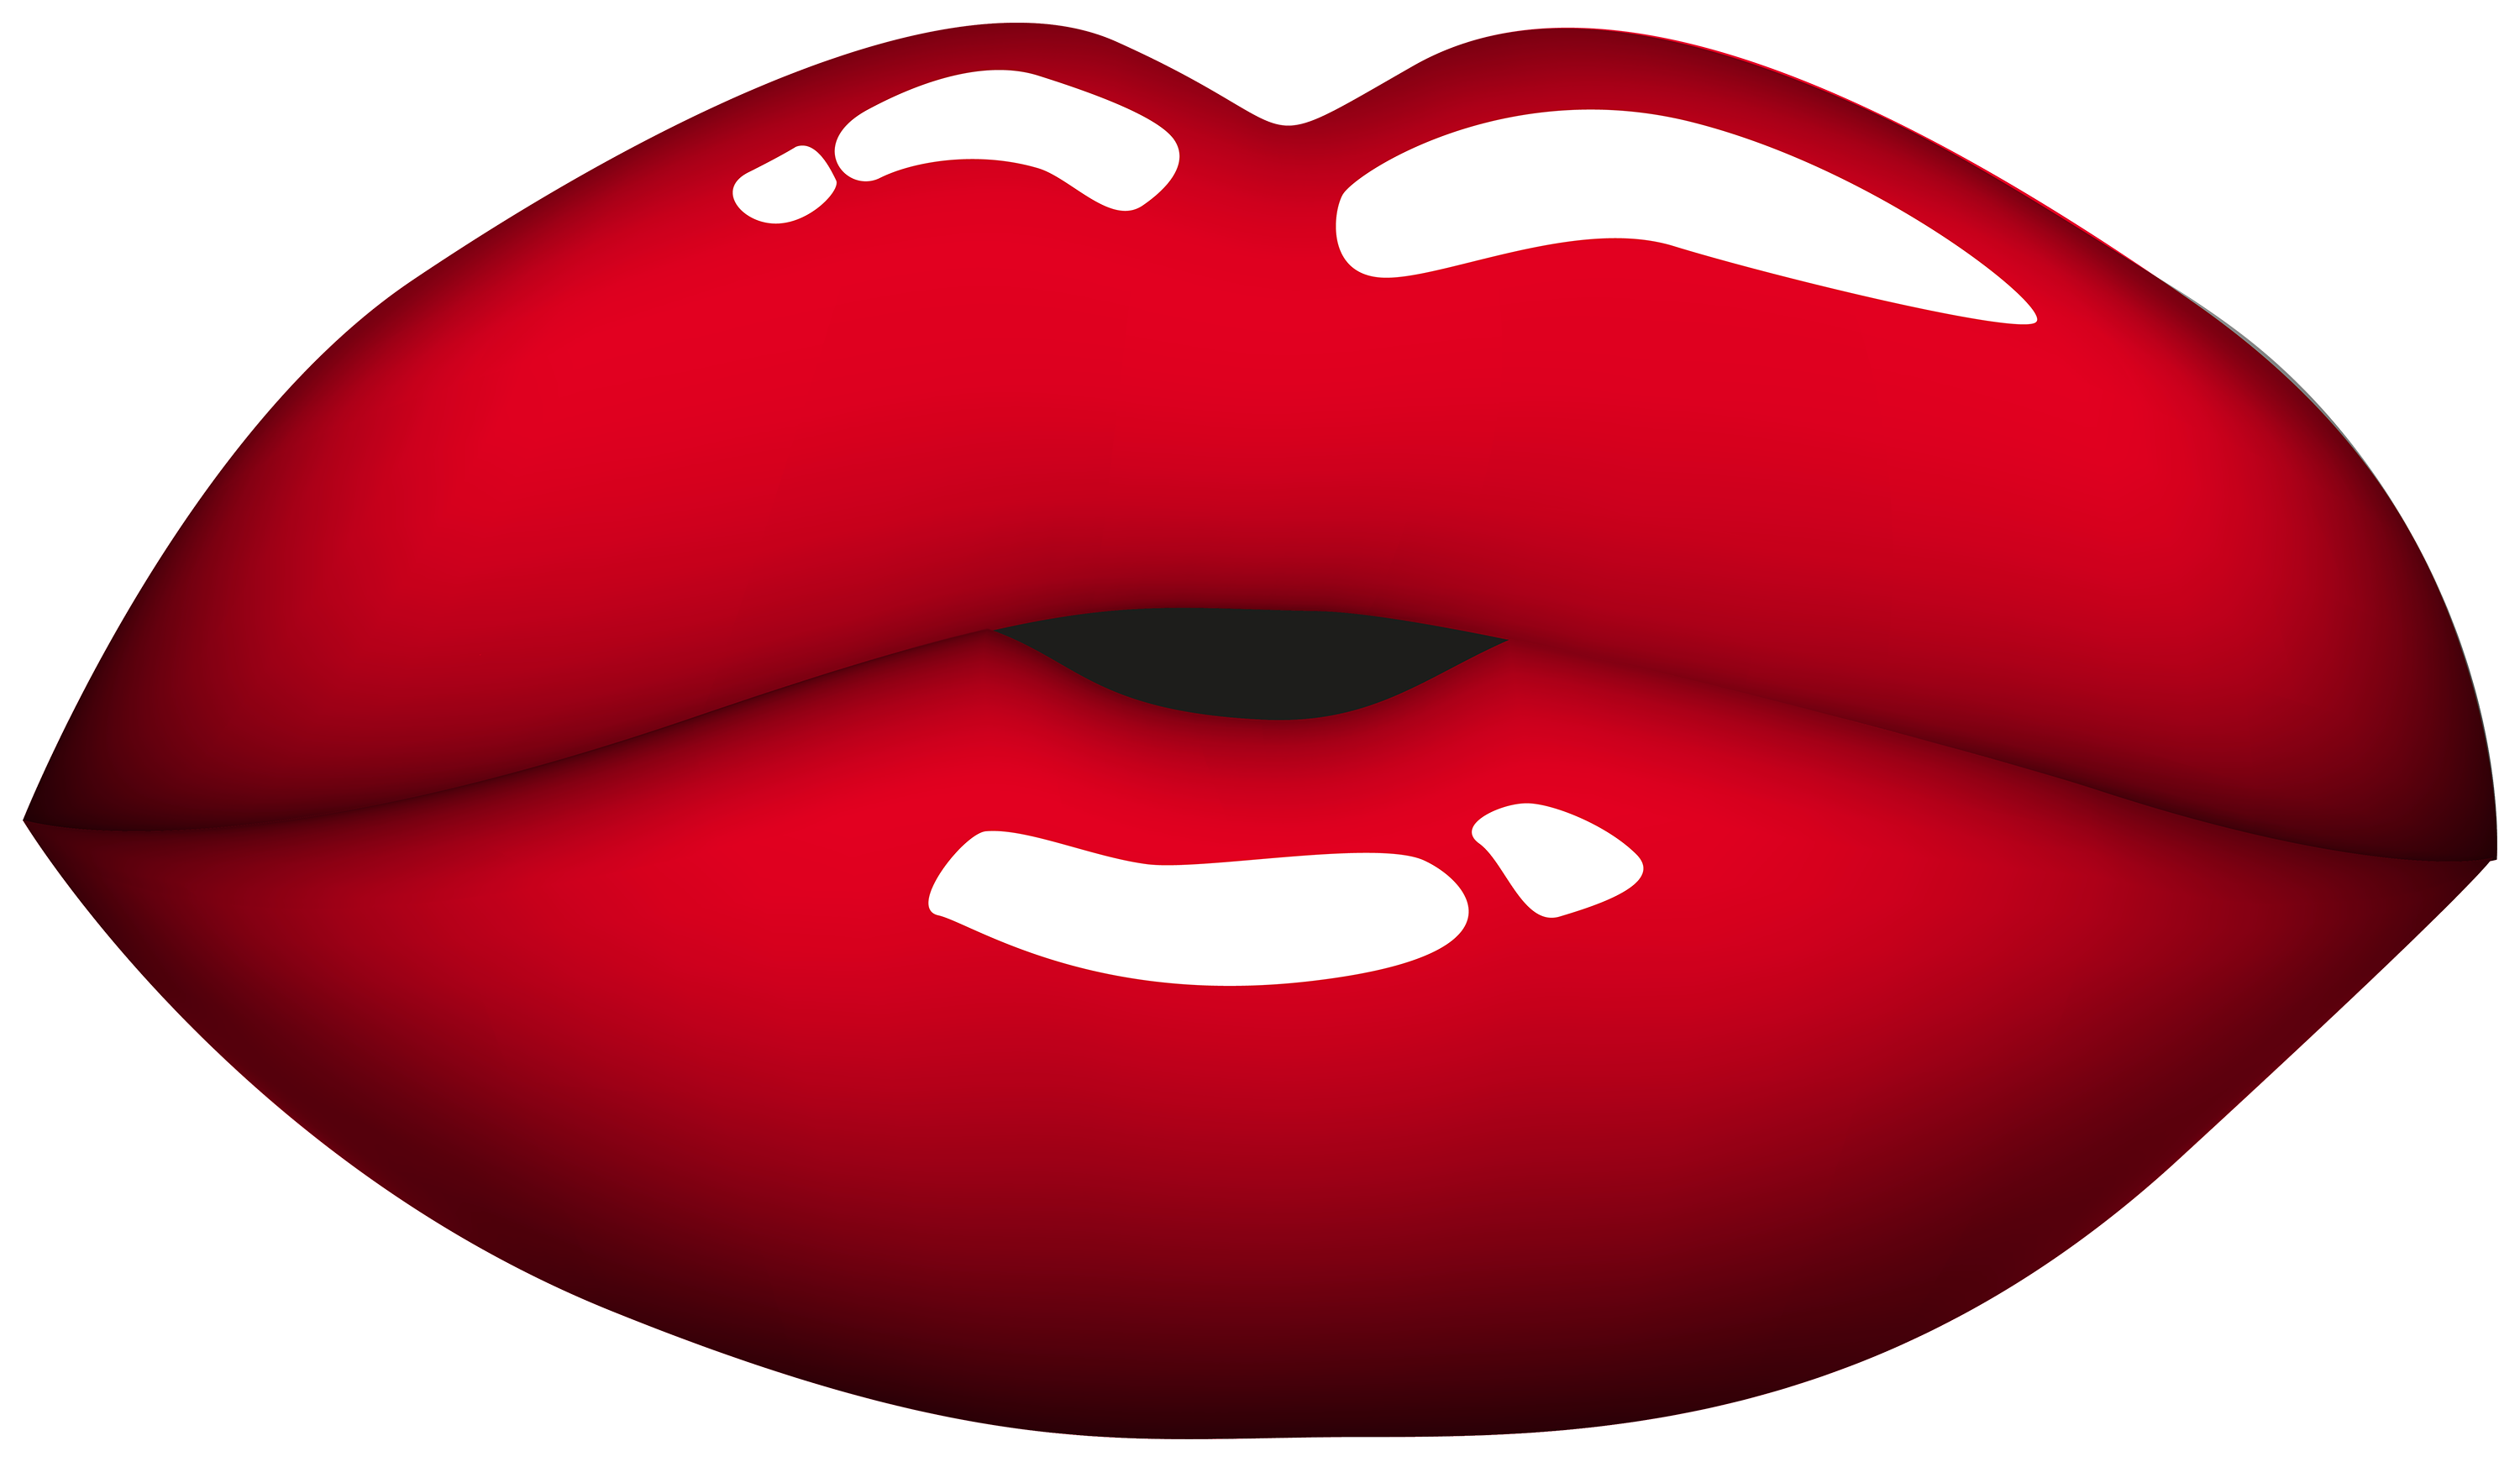 Eyes clipart lip. Red mouth png lips